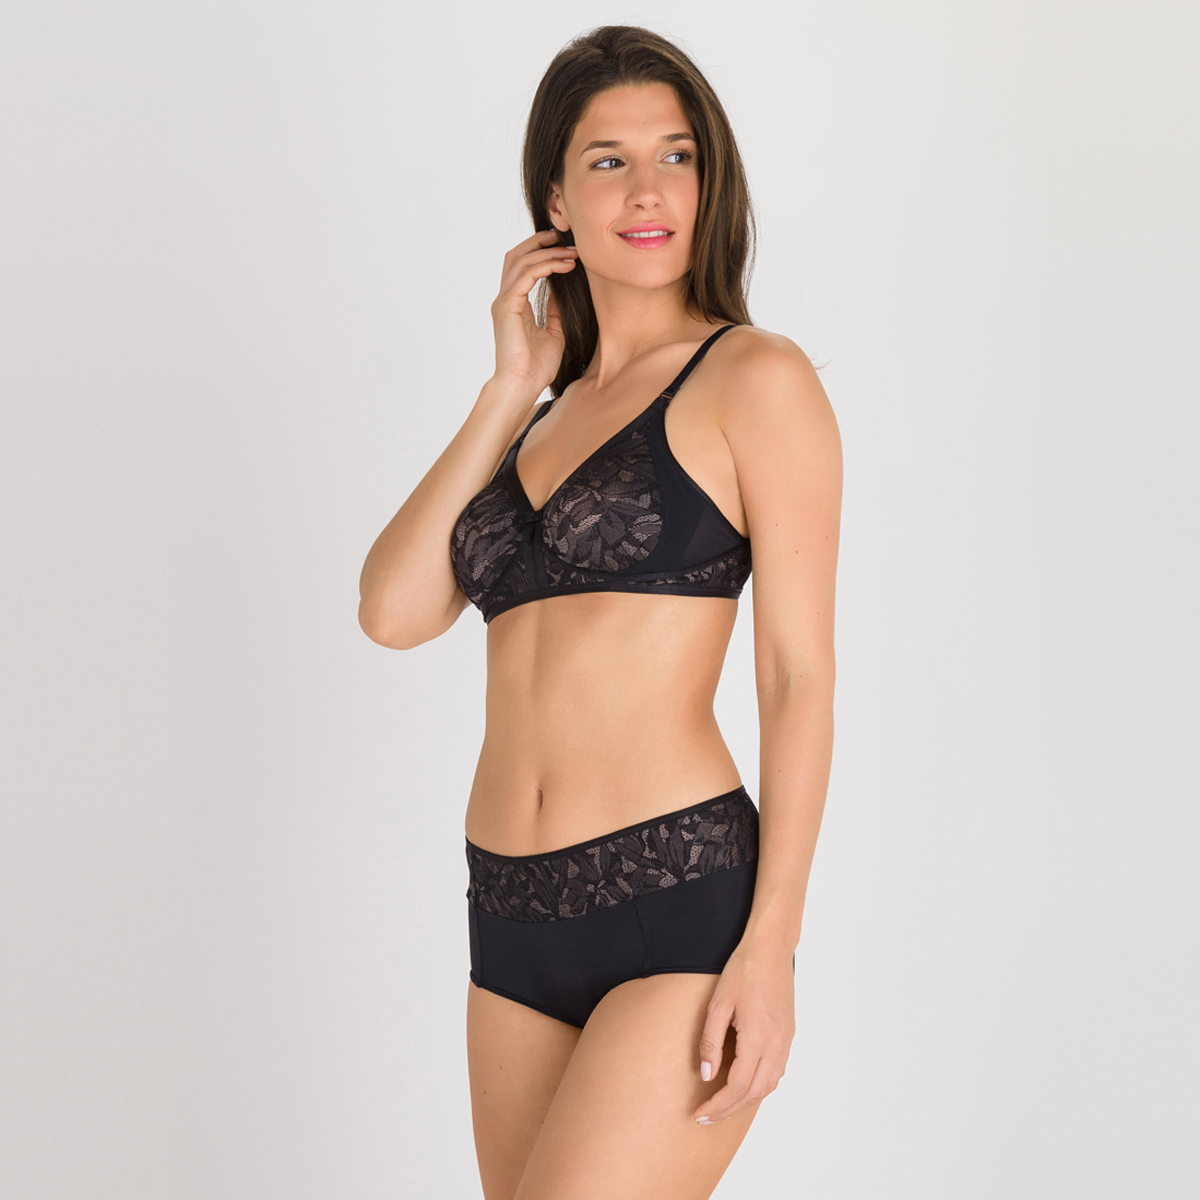 Soutien-gorge sans armatures noir gris - Ideal Beauty Lace, , PLAYTEX